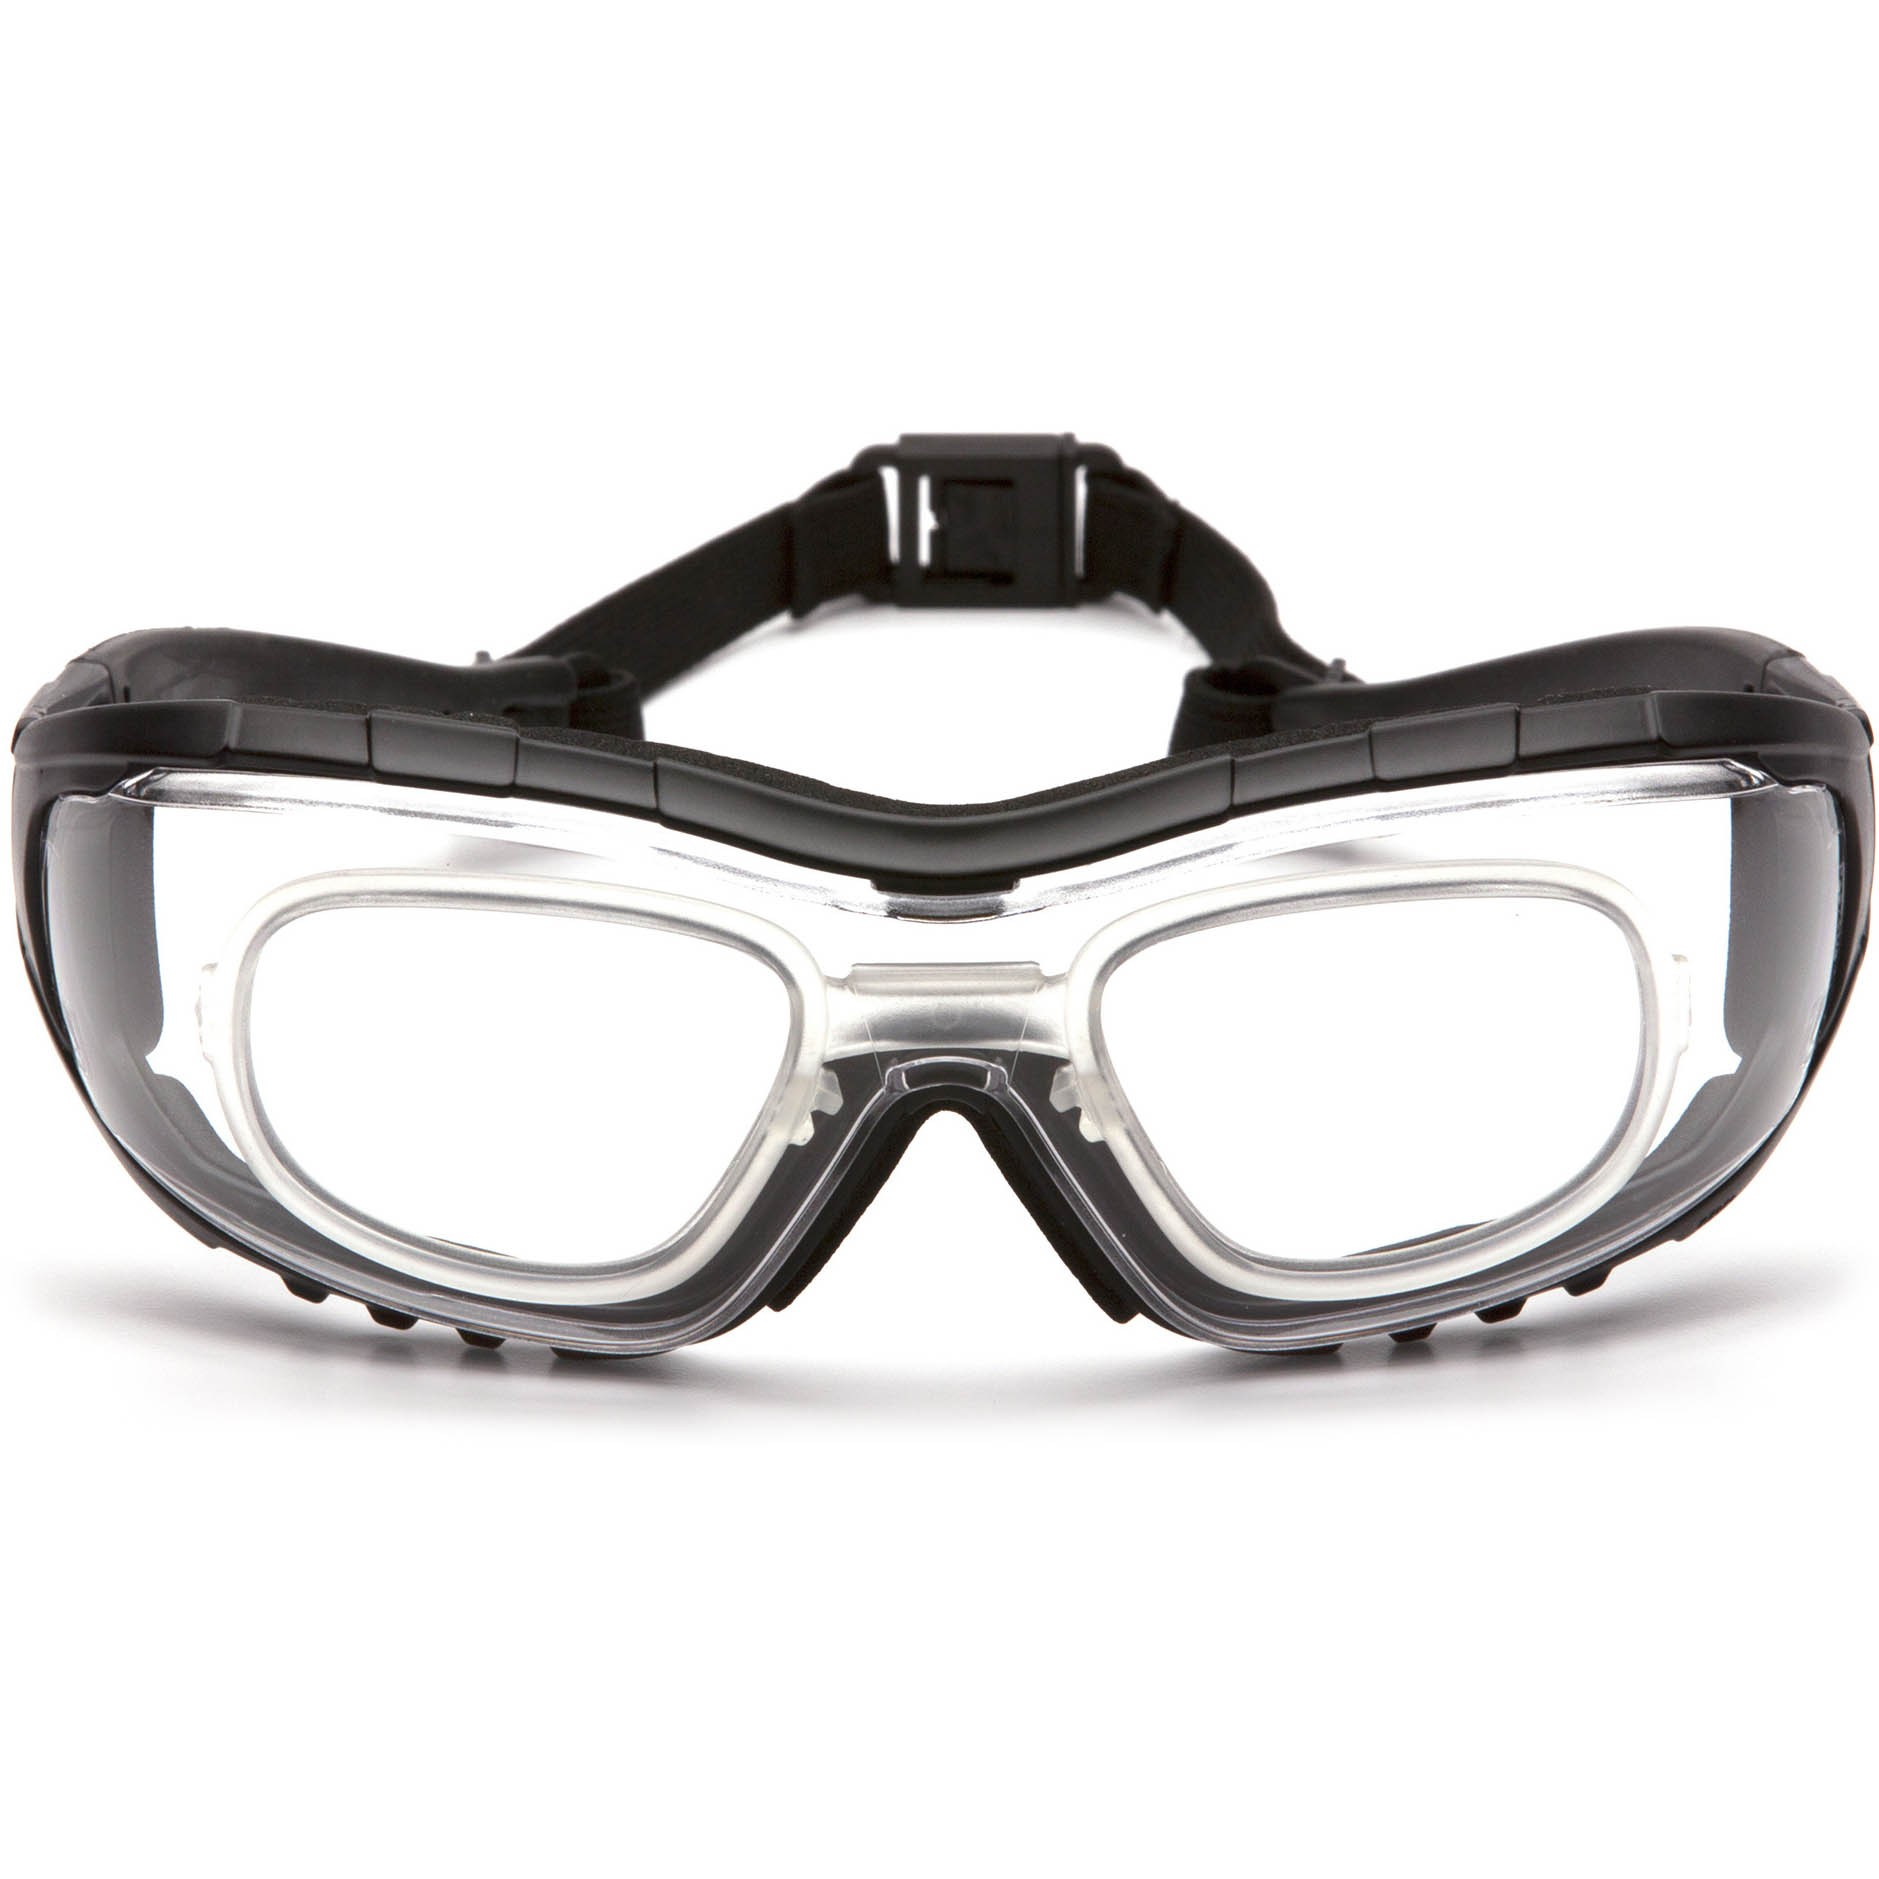 Pyramex V3G RX Options Safety Glasses/Goggles - Black ...